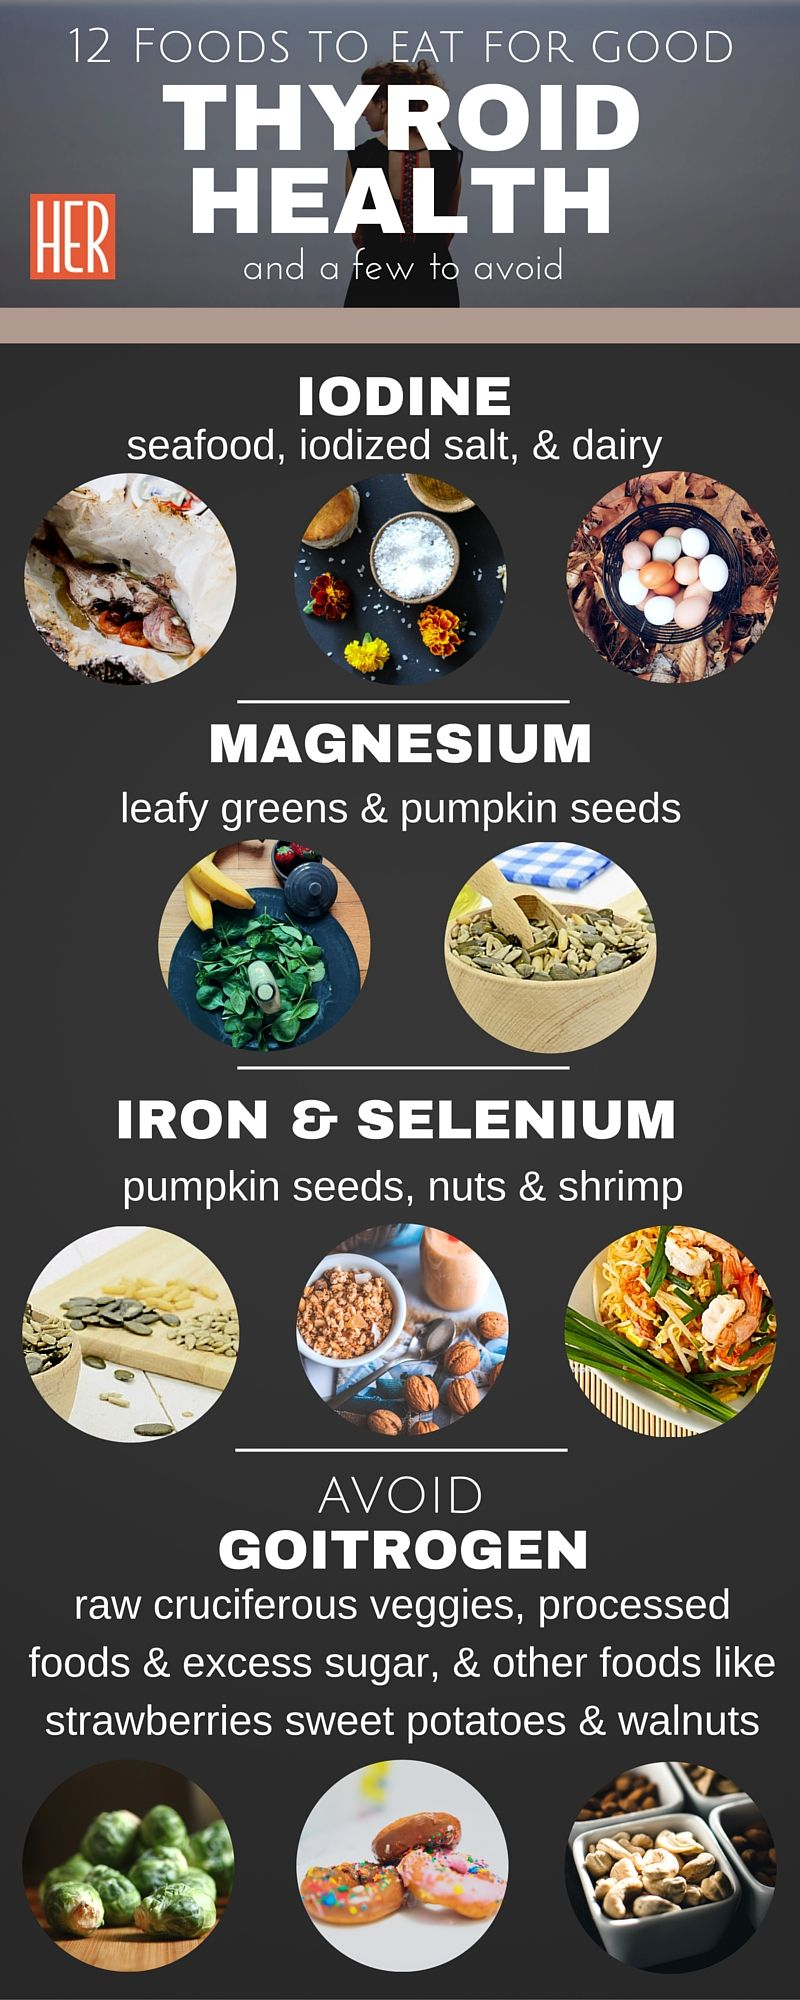 12 Foods To Eat For Good Thyroid Health And A Few To Avoid Thyroid Health Hypothyroidism Diet Healthy Thyroid